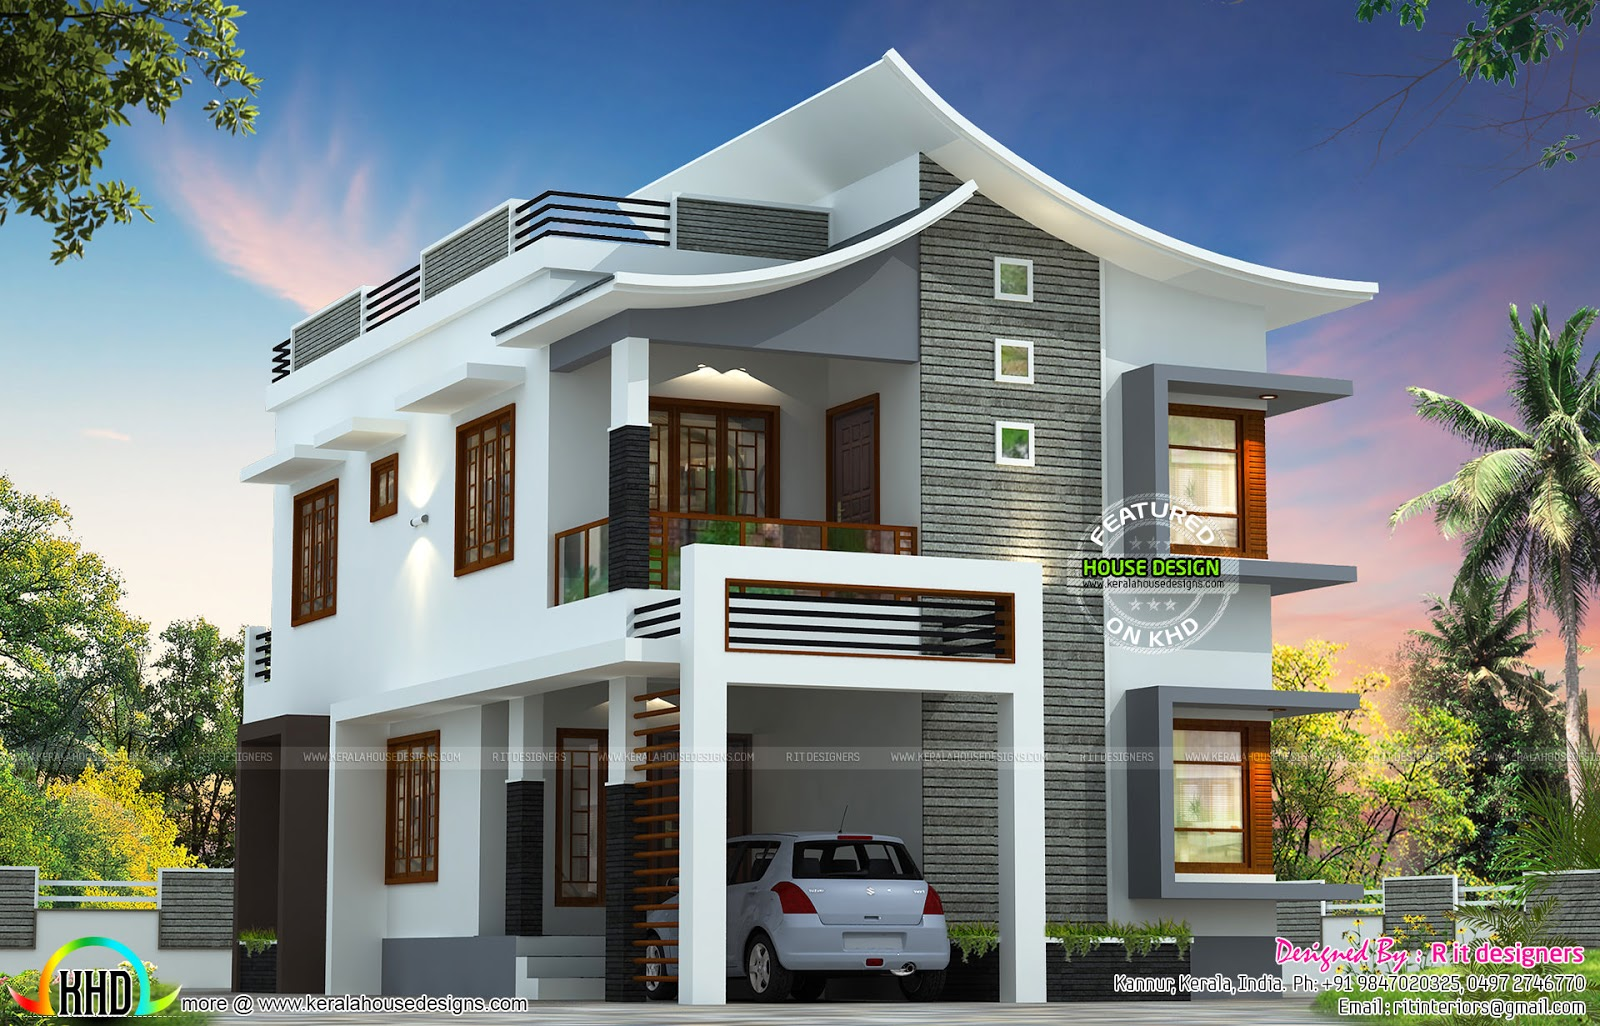 February 2016 kerala home design and floor plans for Www kerala house designs com